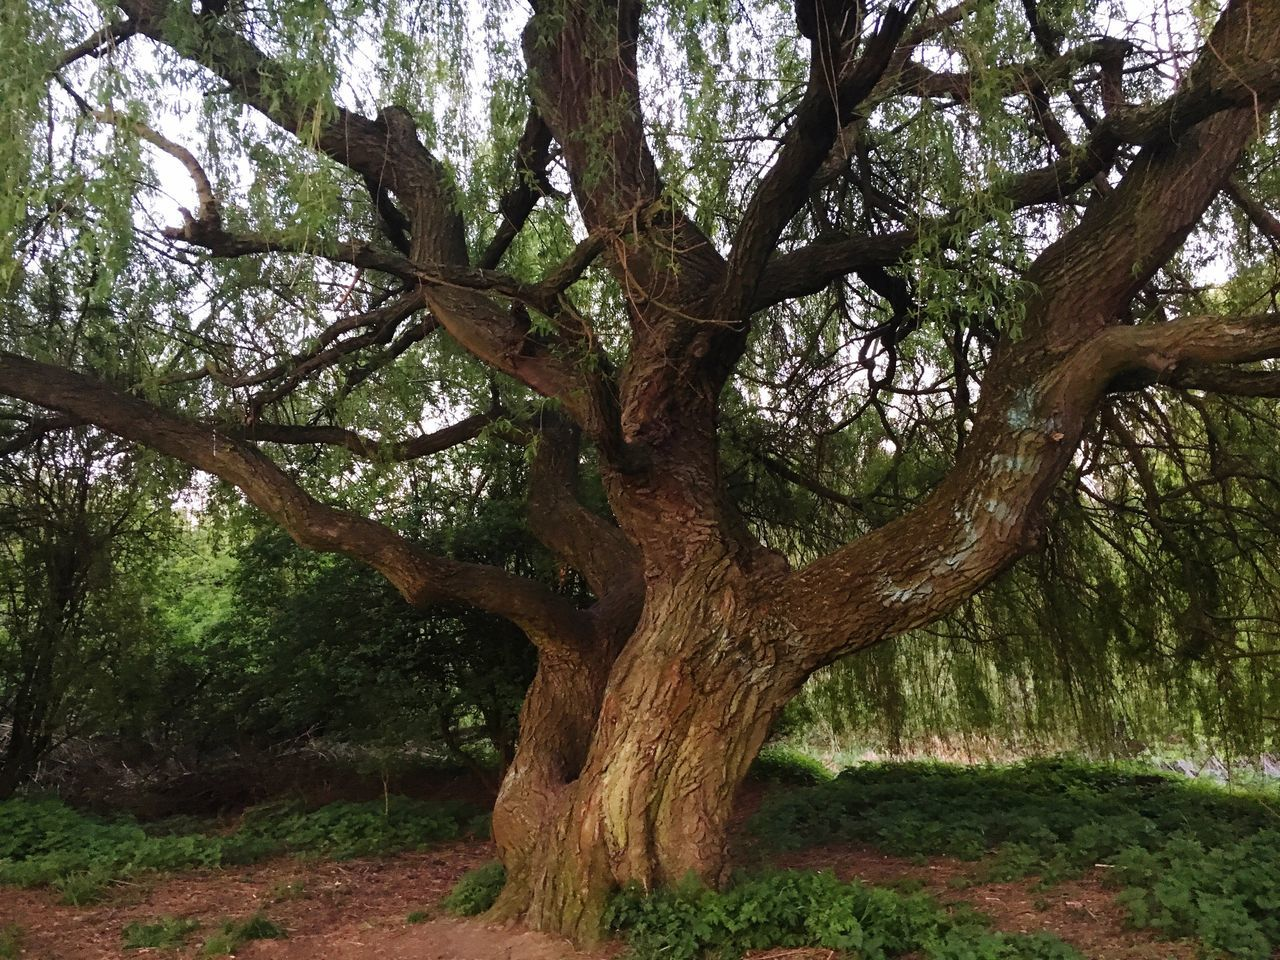 Tree Tree Trunk Branch Nature Growth Tranquility No People Beauty In Nature Outdoors Day Huge